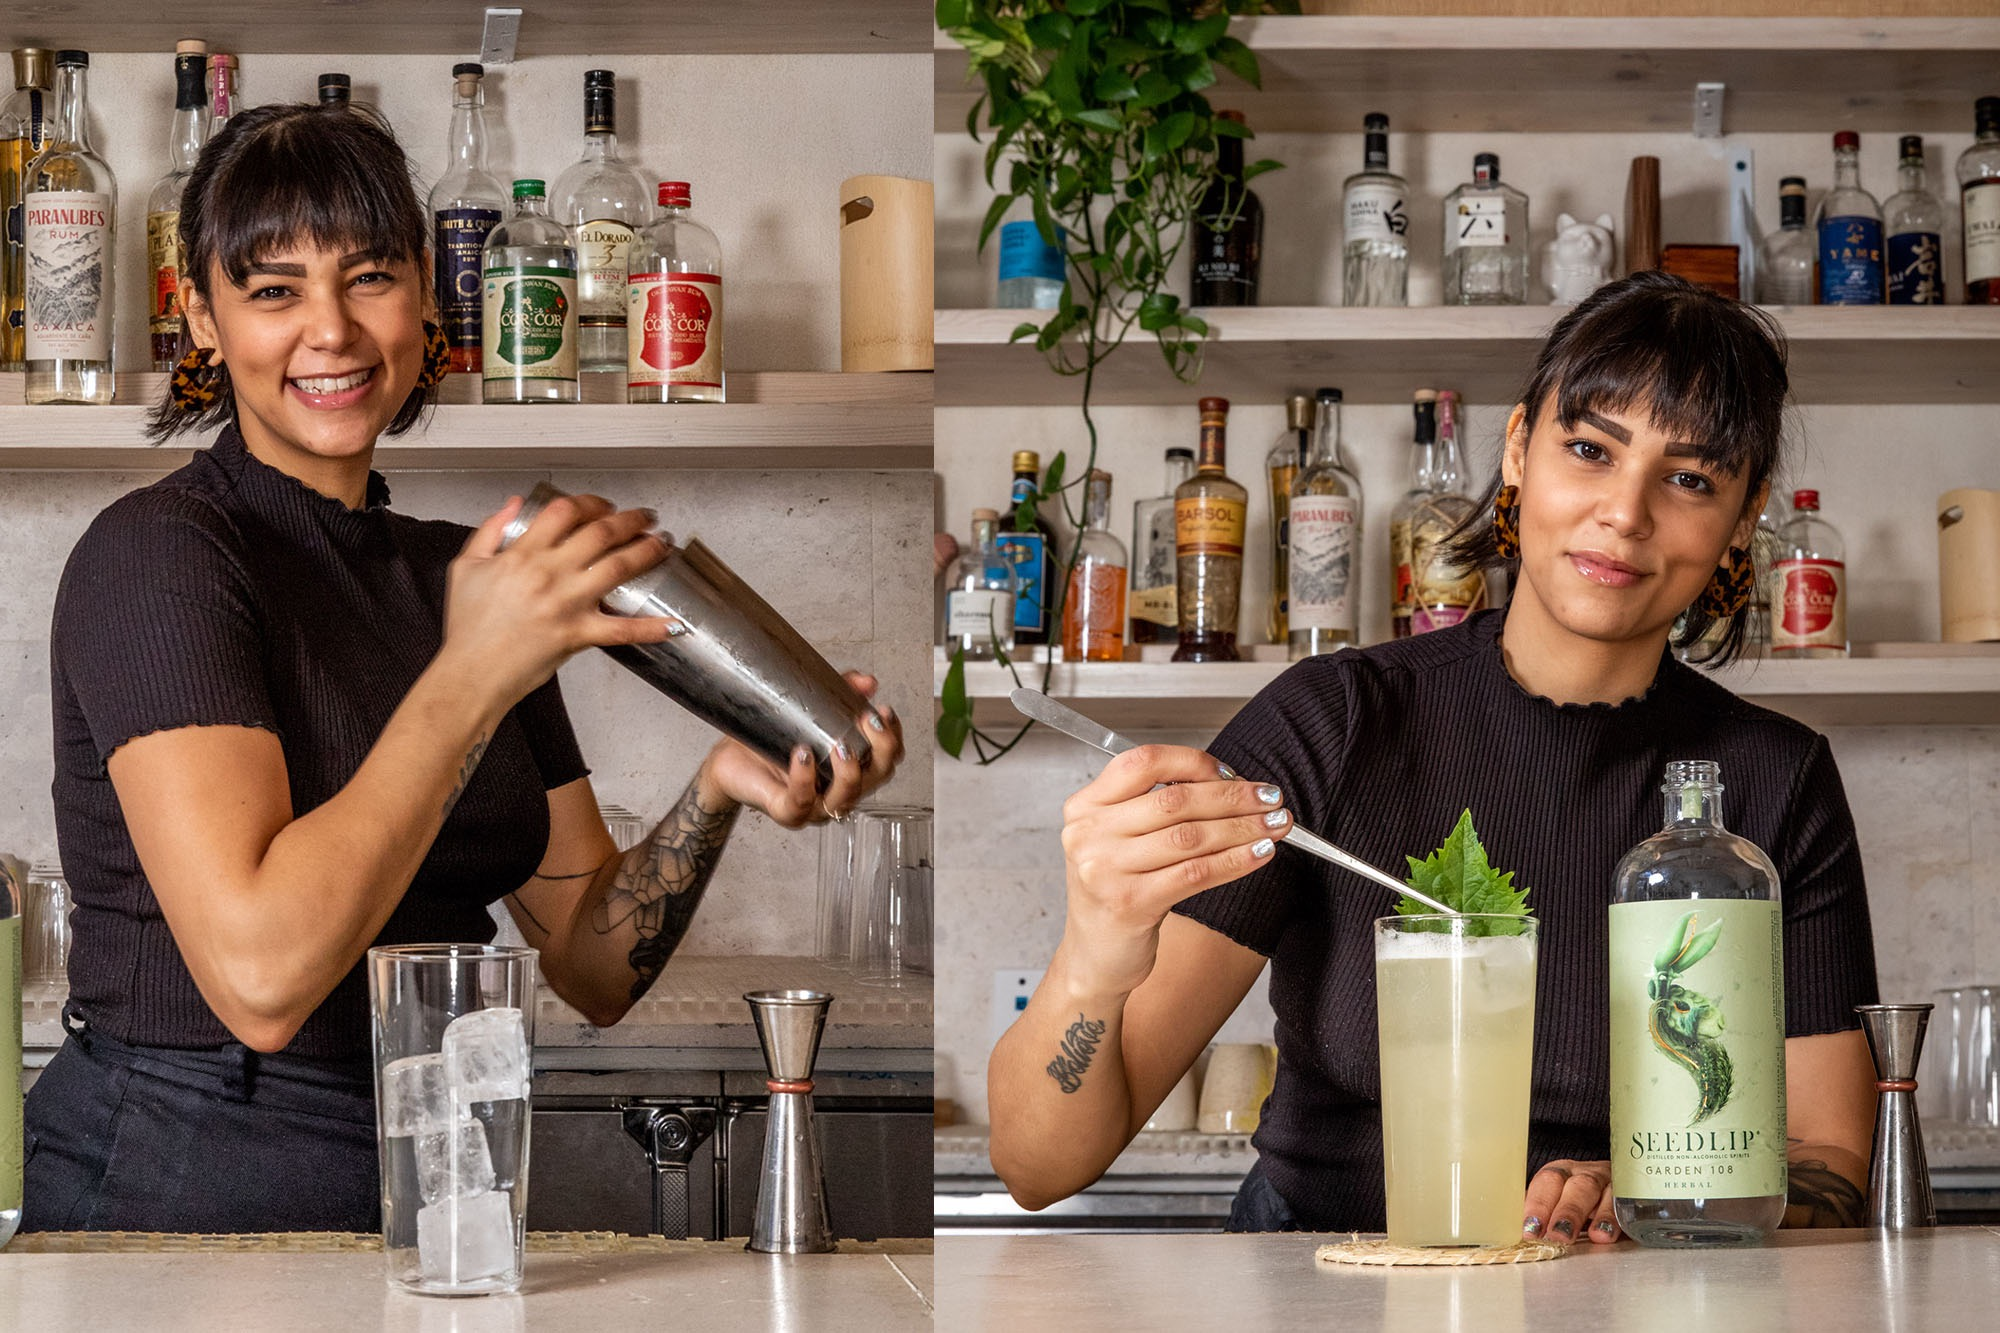 Bartender shaking a coktail and garnishing it with a leaf